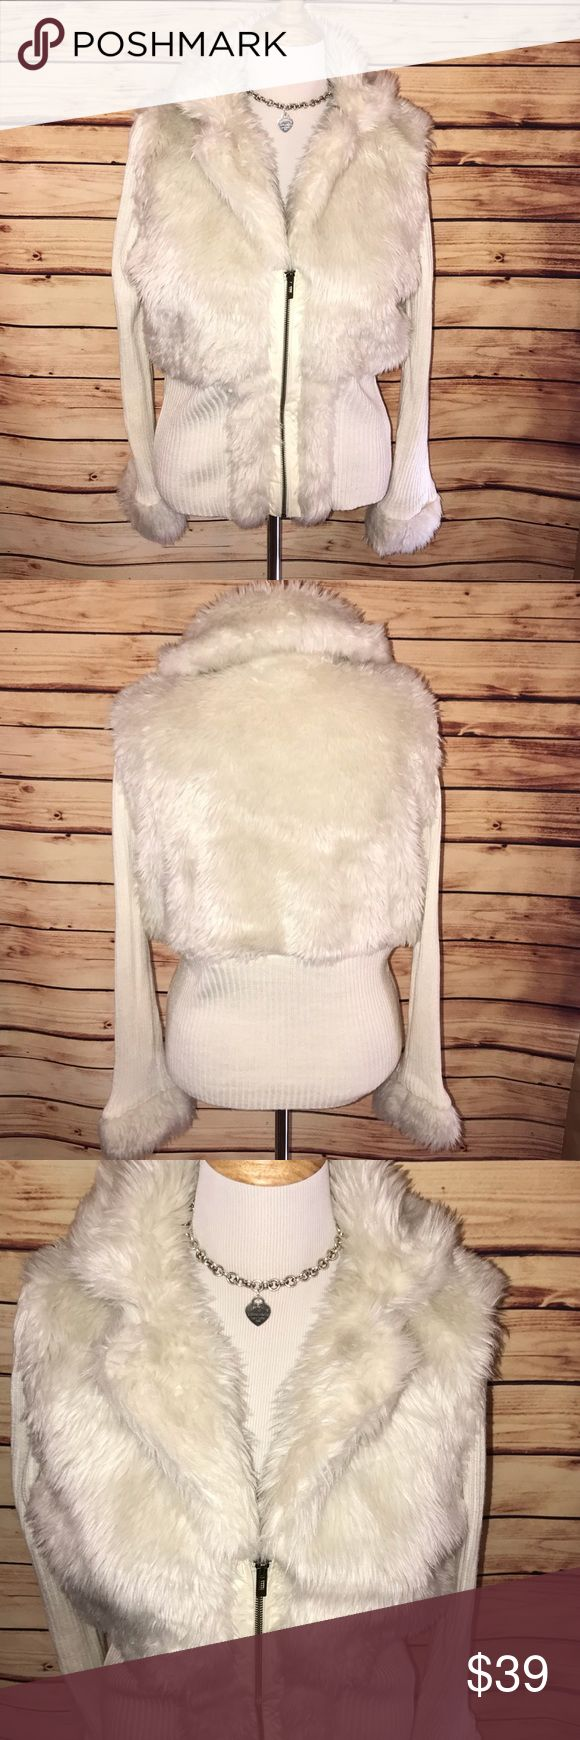 🆕 Roz & Ali Faux Fur Zip Up Sweater Coat Gorgeous furry and plush sweater coat. Super soft and stylish, beautiful neutral cream shade-definite head turner. BNWT from Dress Barn, no flaws. Excellent quality and condition. Check out my other listings to bundle and save! Roz & Ali Jackets & Coats